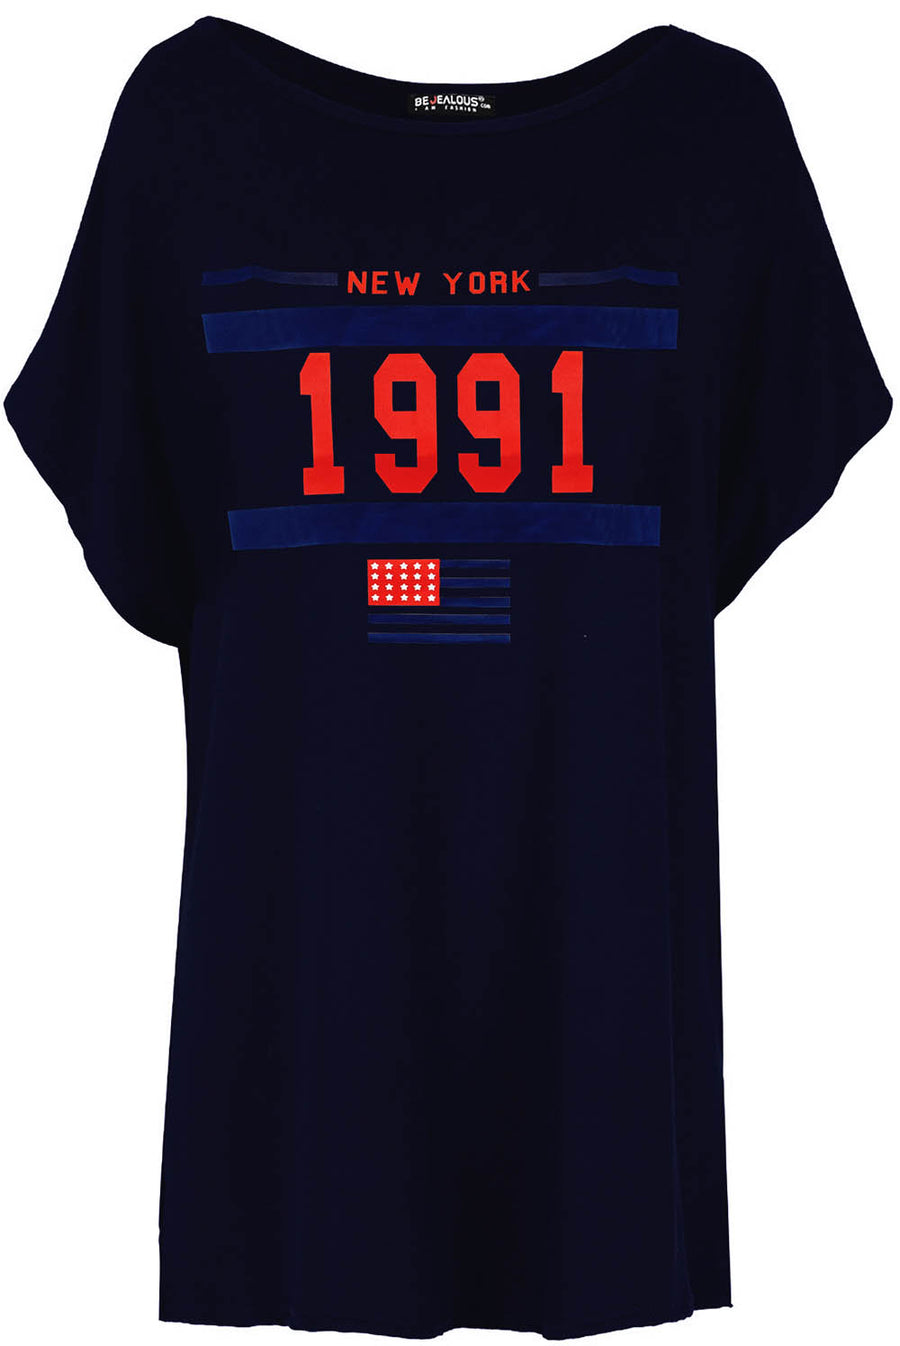 New York Oversized Slogan Bat Wing Tshirt - bejealous-com